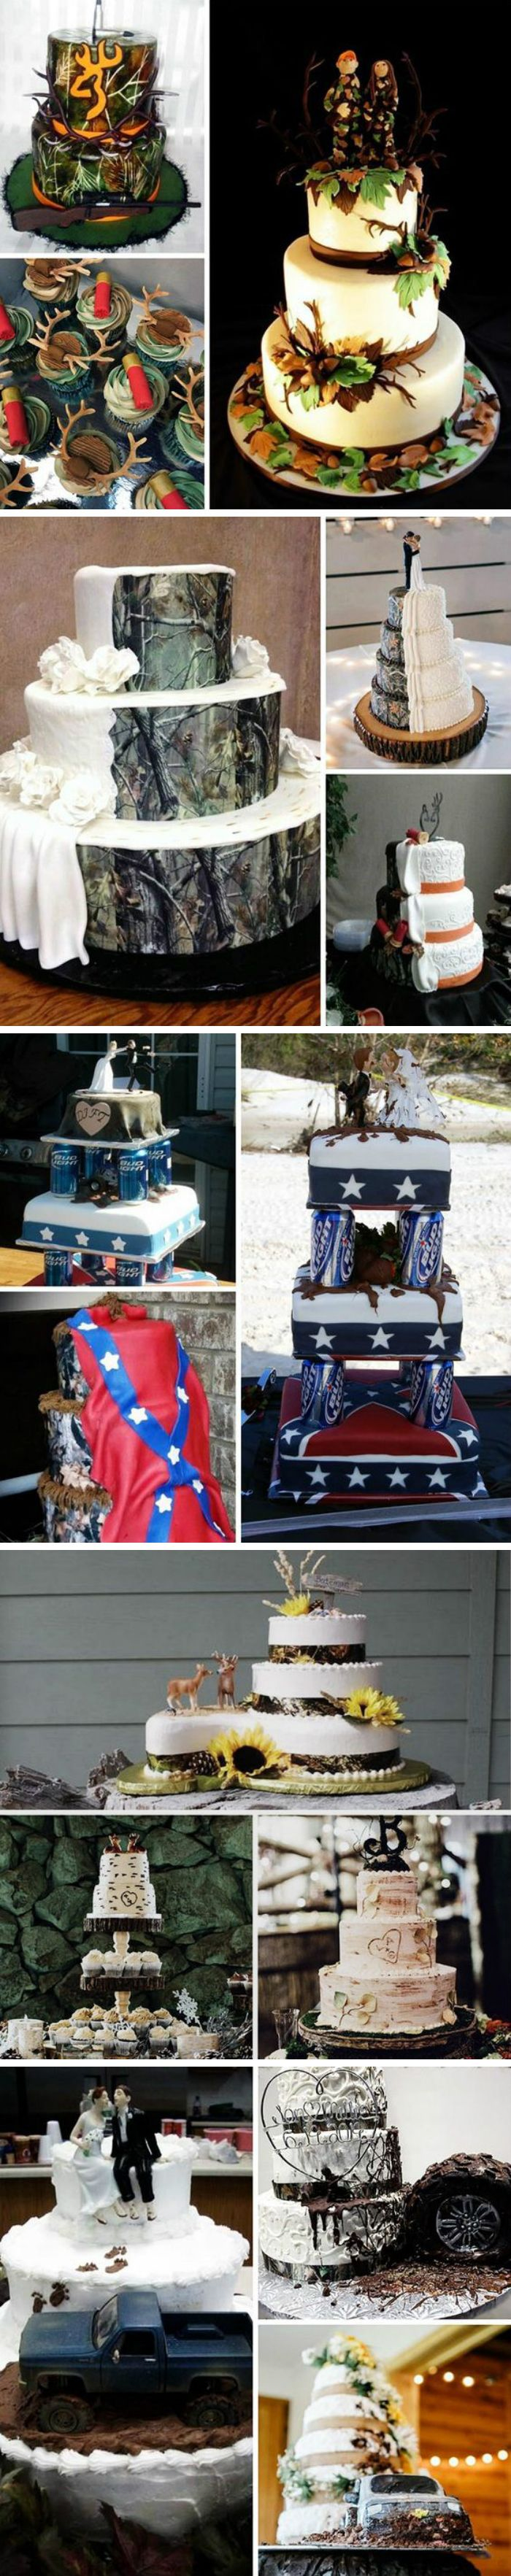 """5 Cake Themes for your Camo Wedding""                                                                                                                                                                                 More"